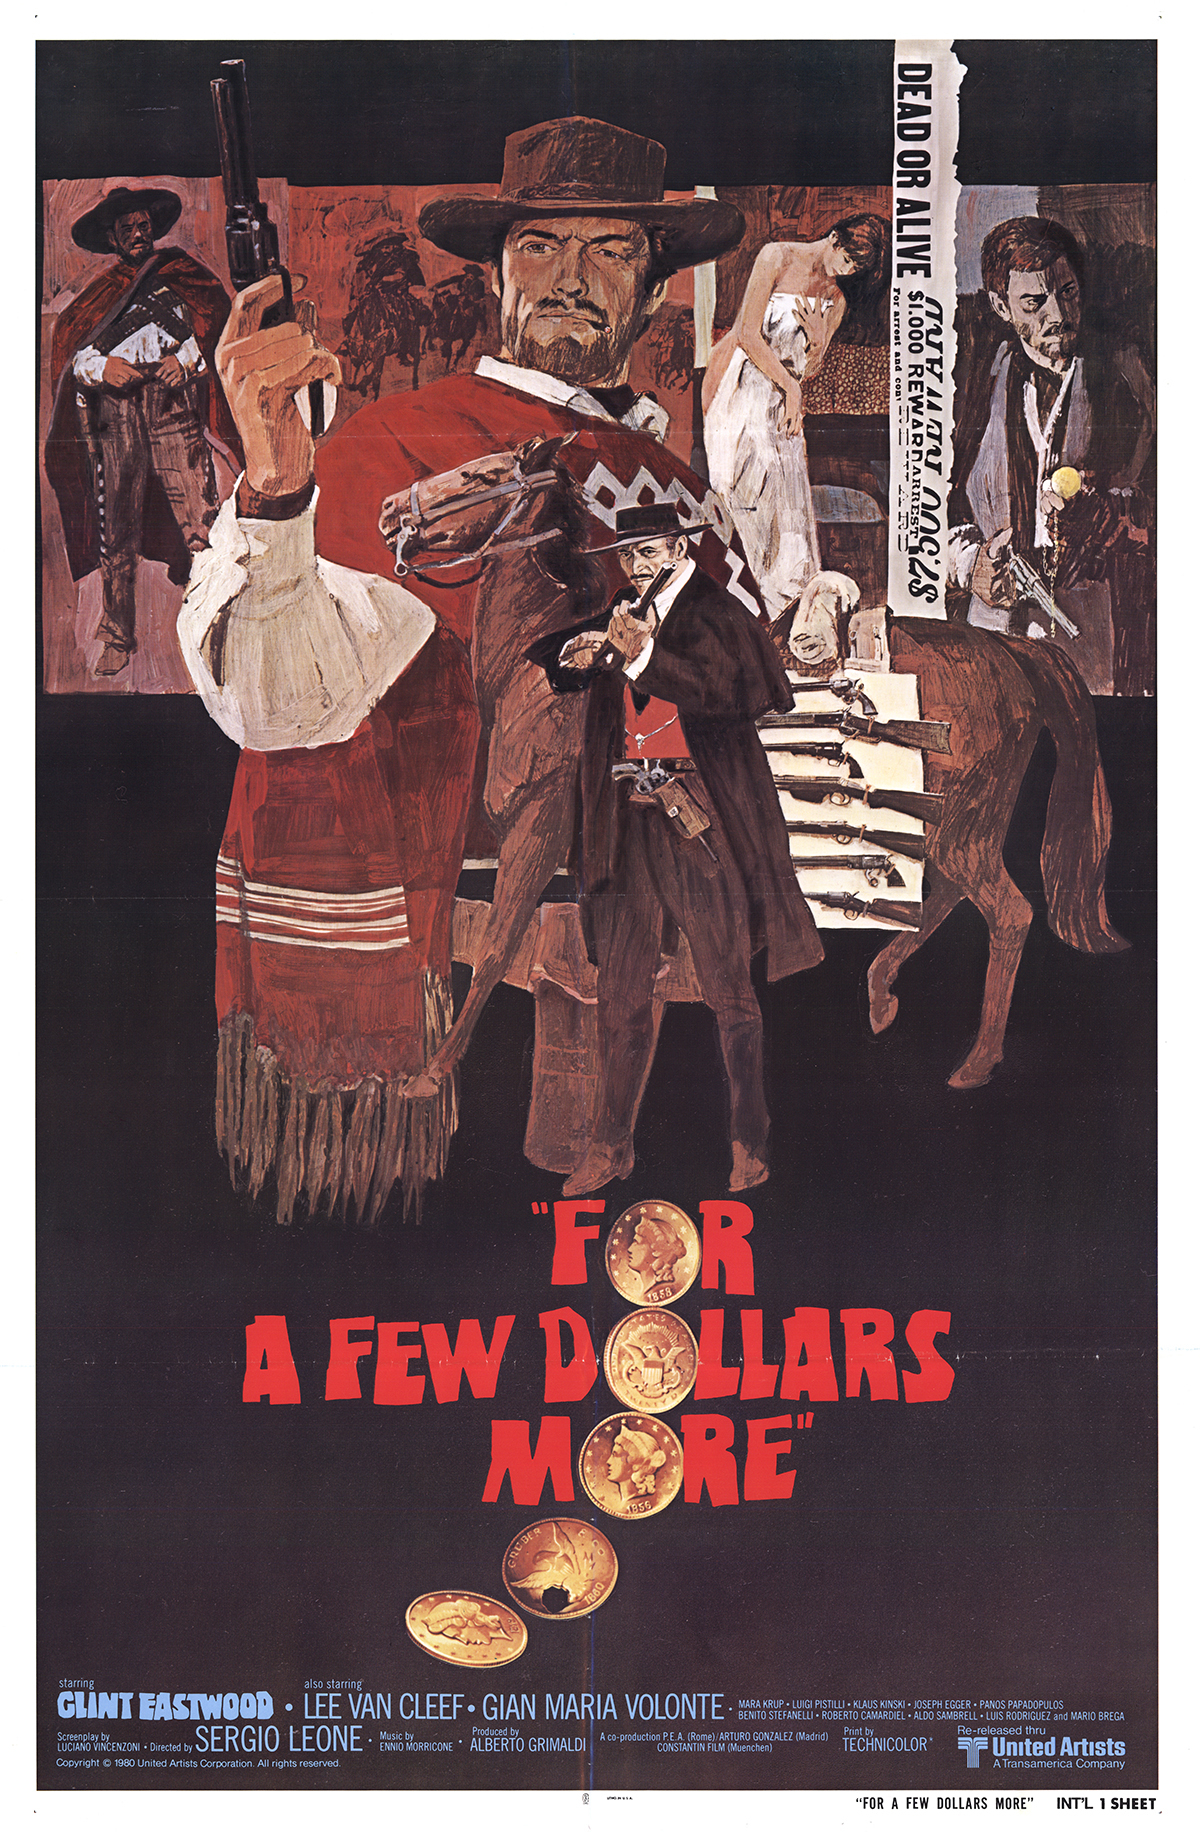 For A Few Dollars More - 1980 58c836fd2a00e46896776ac2